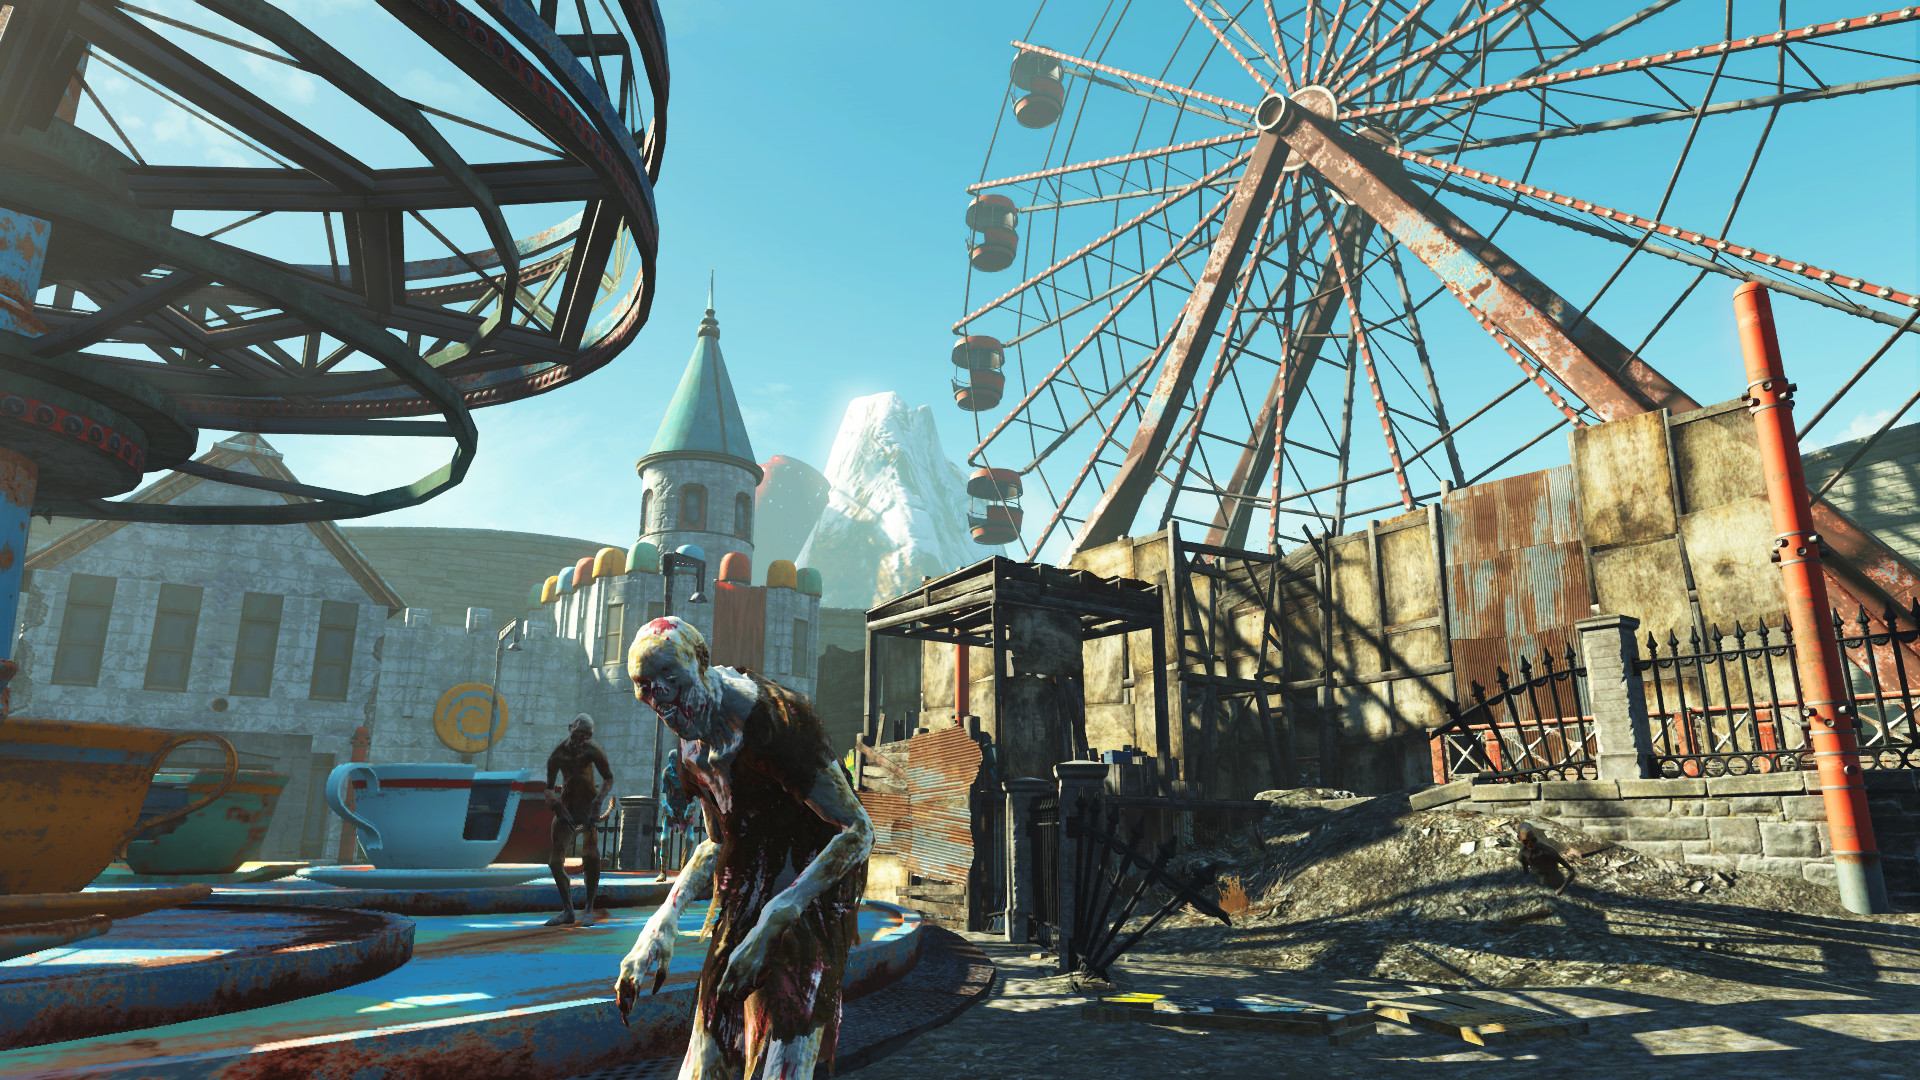 Buy now Fallout 4 Nuka World DLC (steam key) -- RU and download